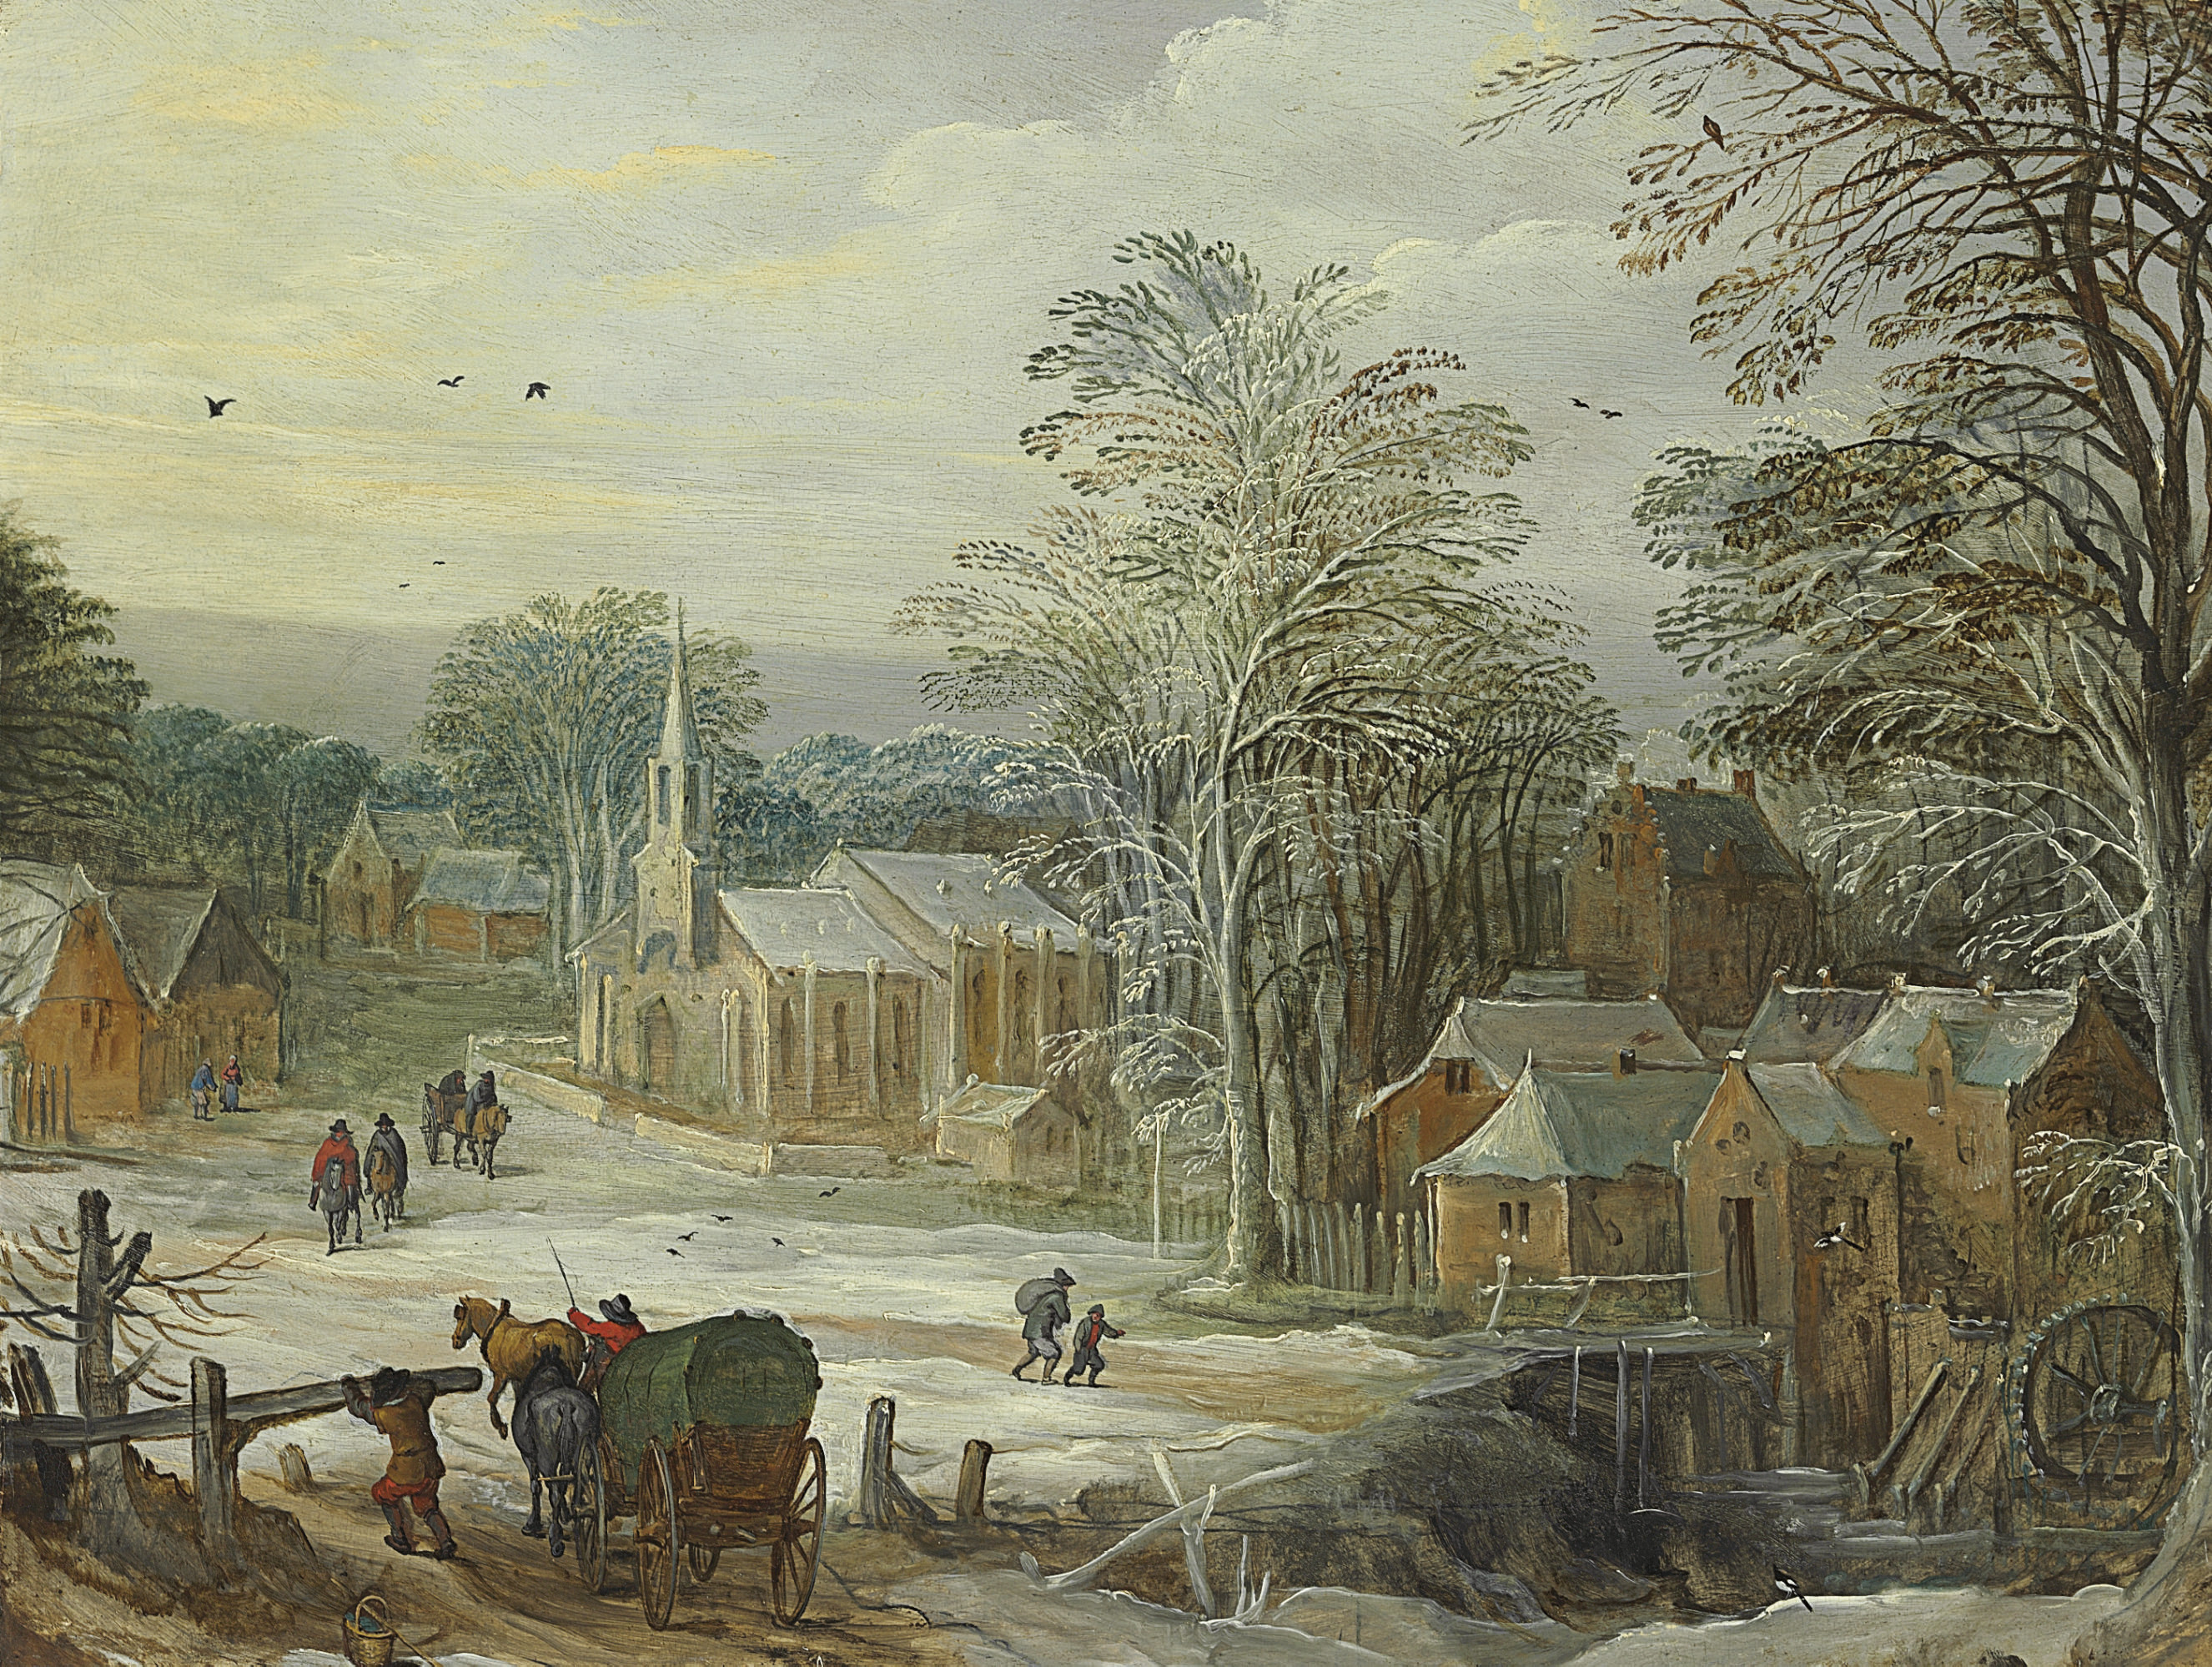 A winter landscape with travellers arriving at a town